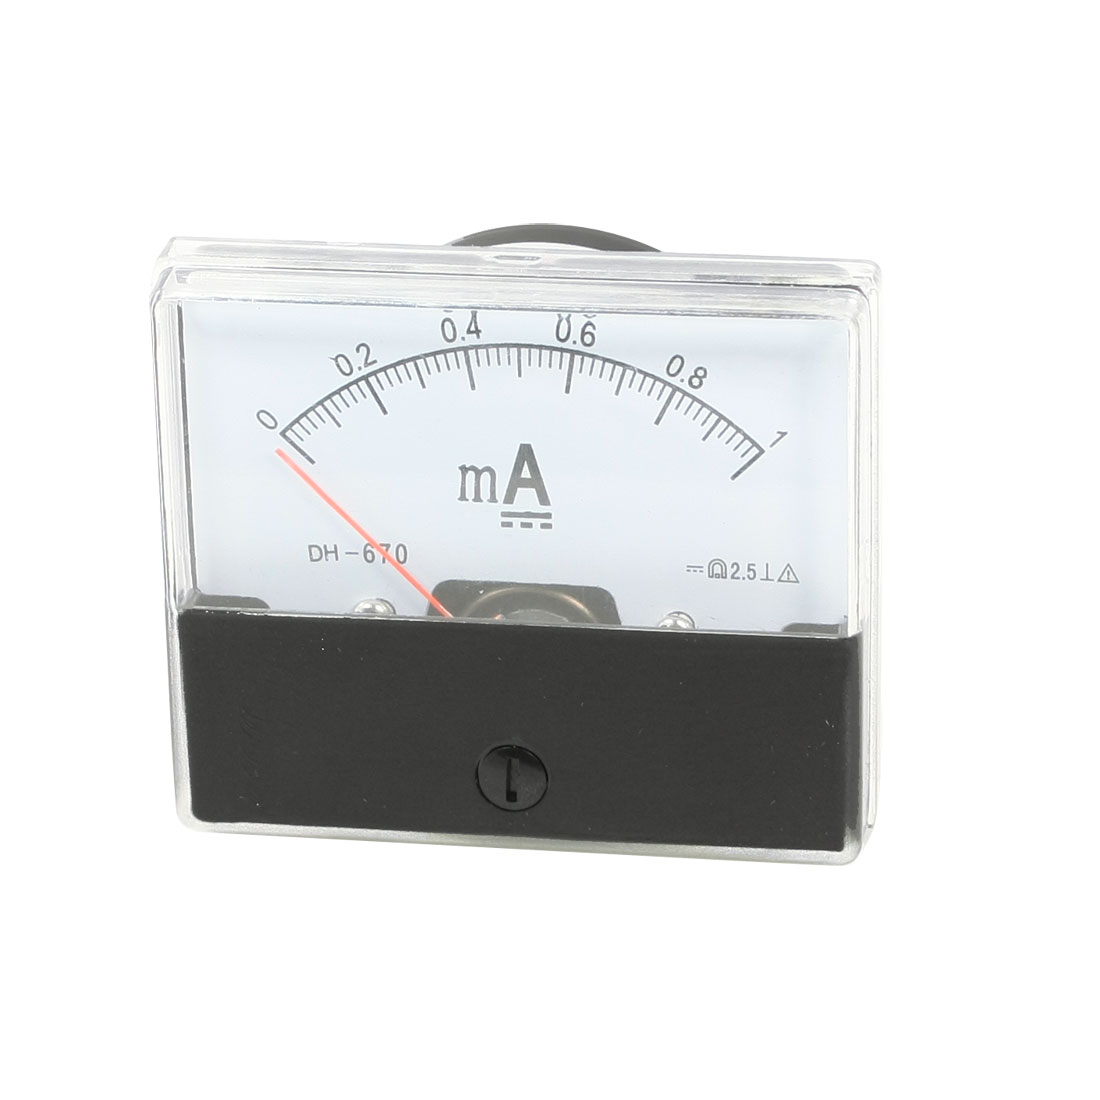 DH-670 DC 0-1mA Clear Analog Panel Meter Ammeter Gauge